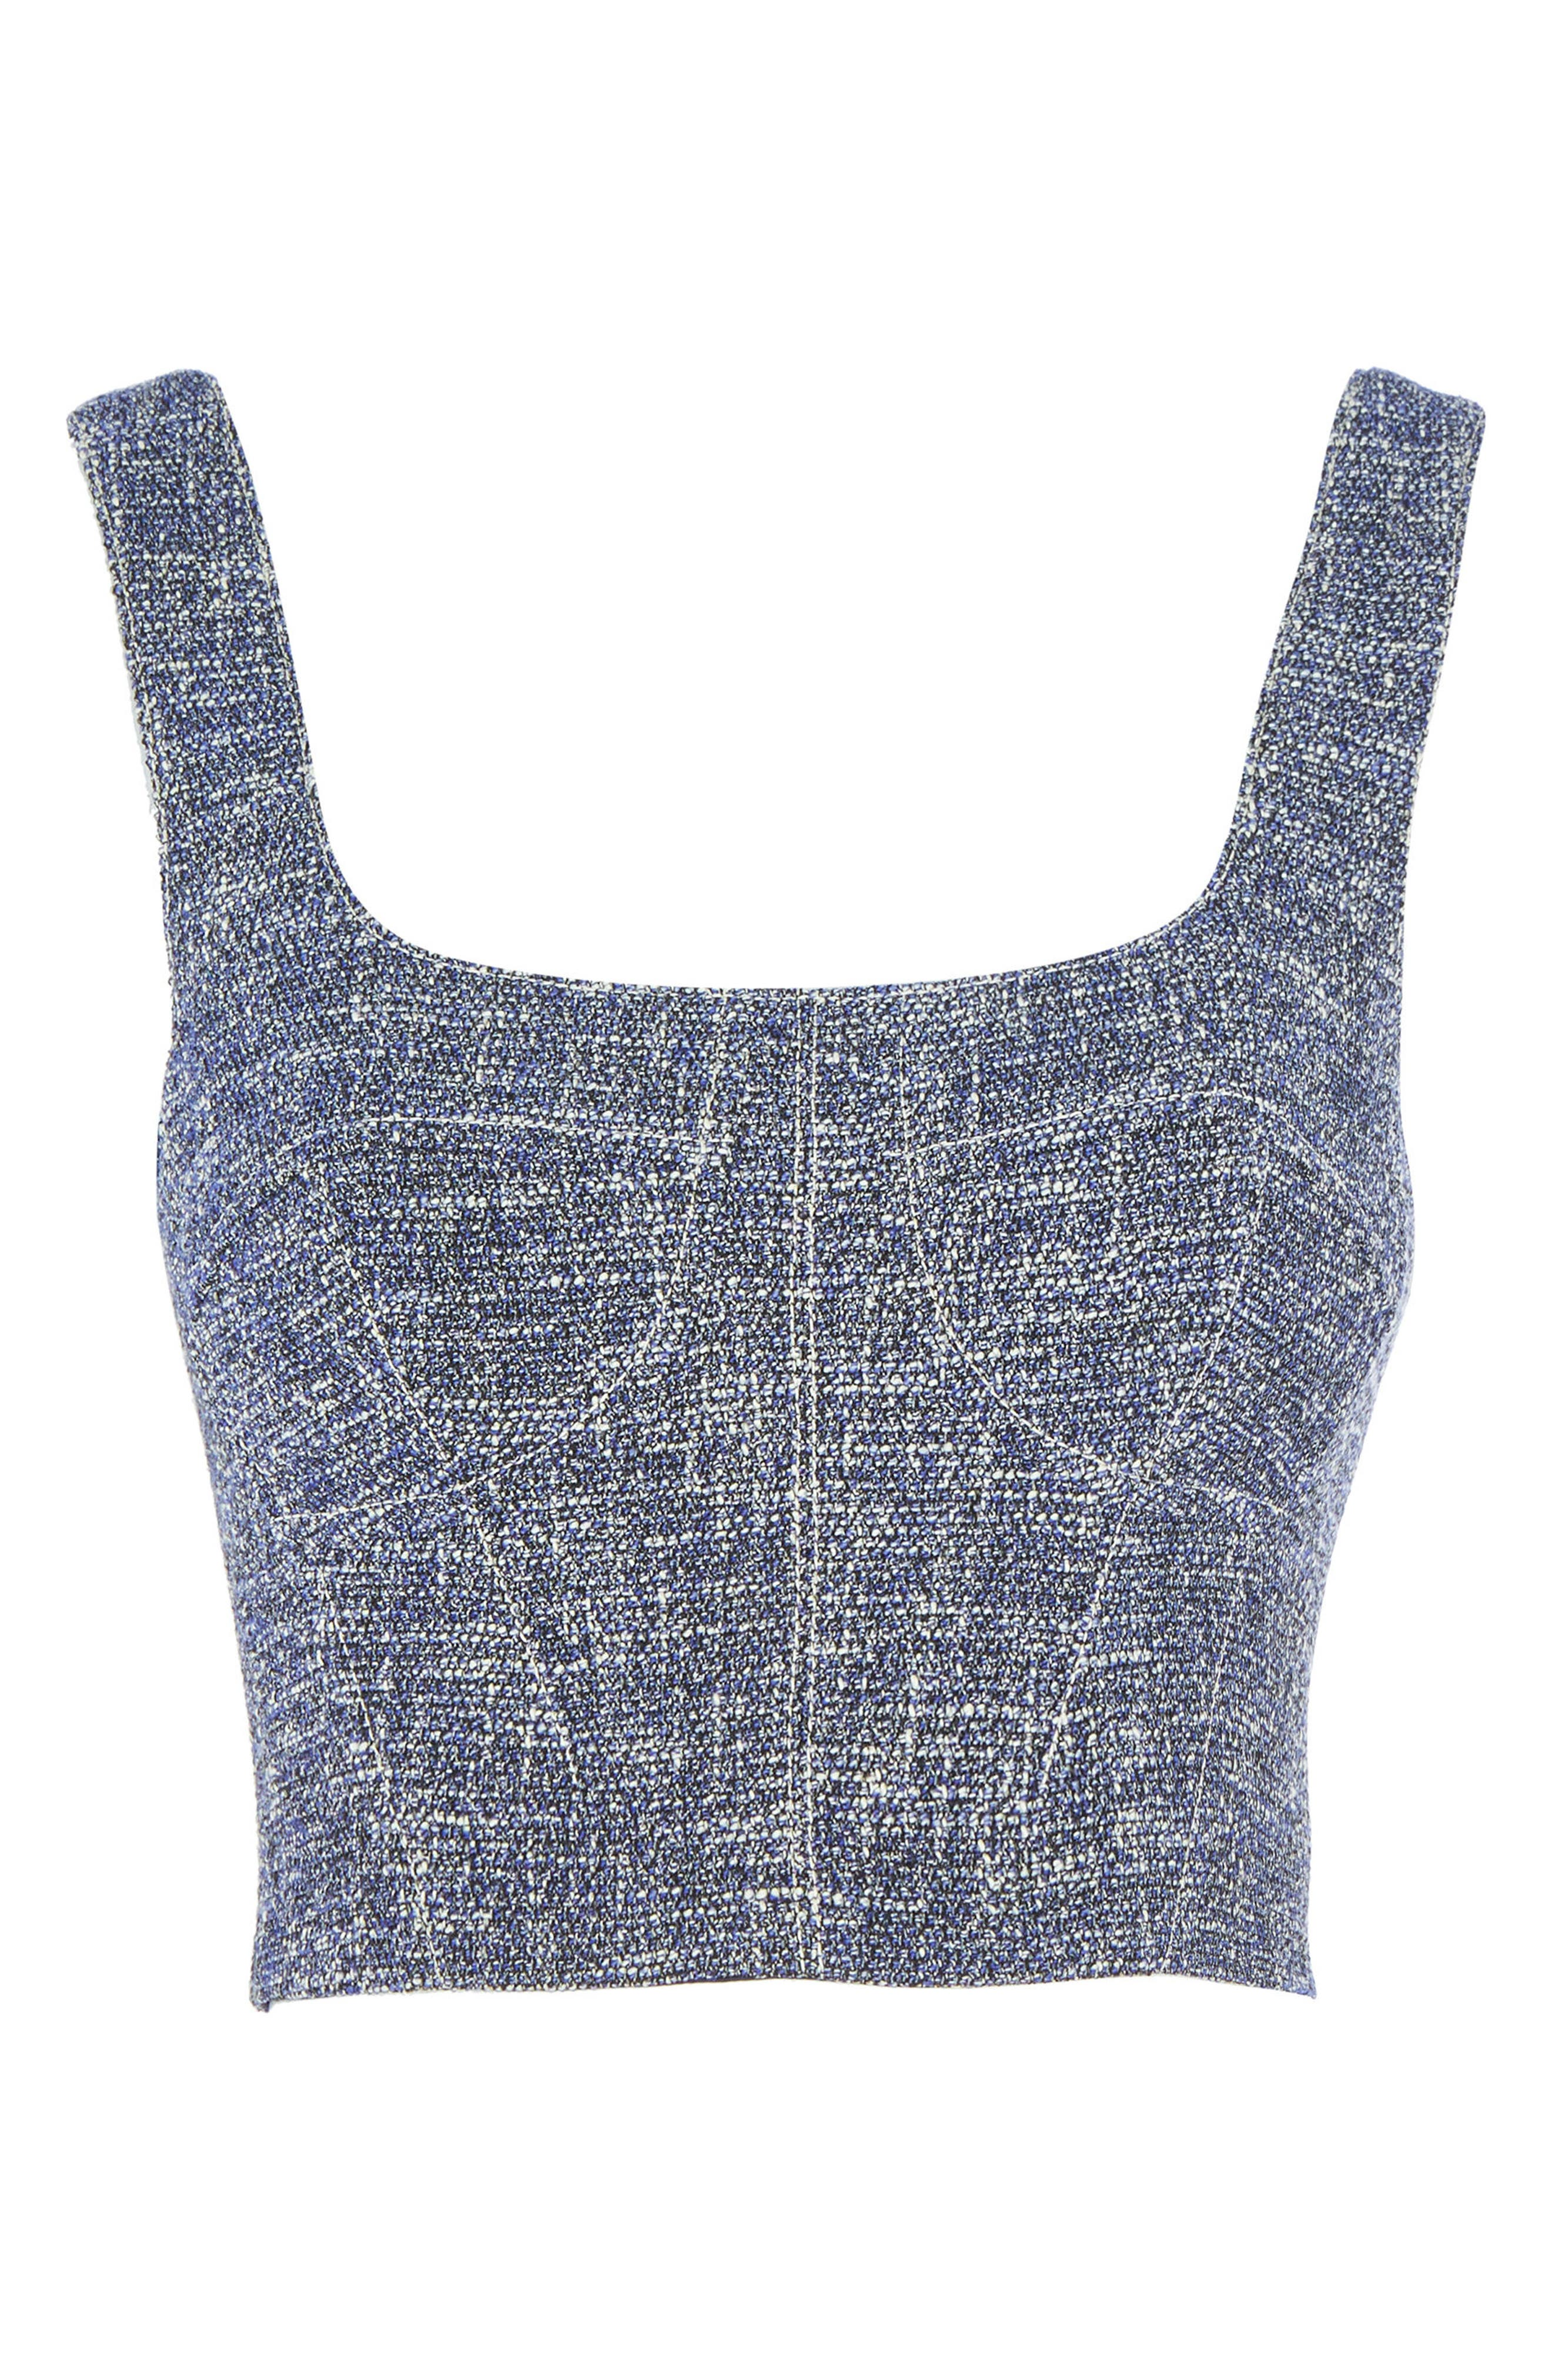 Topshop Bouclé Crop Top